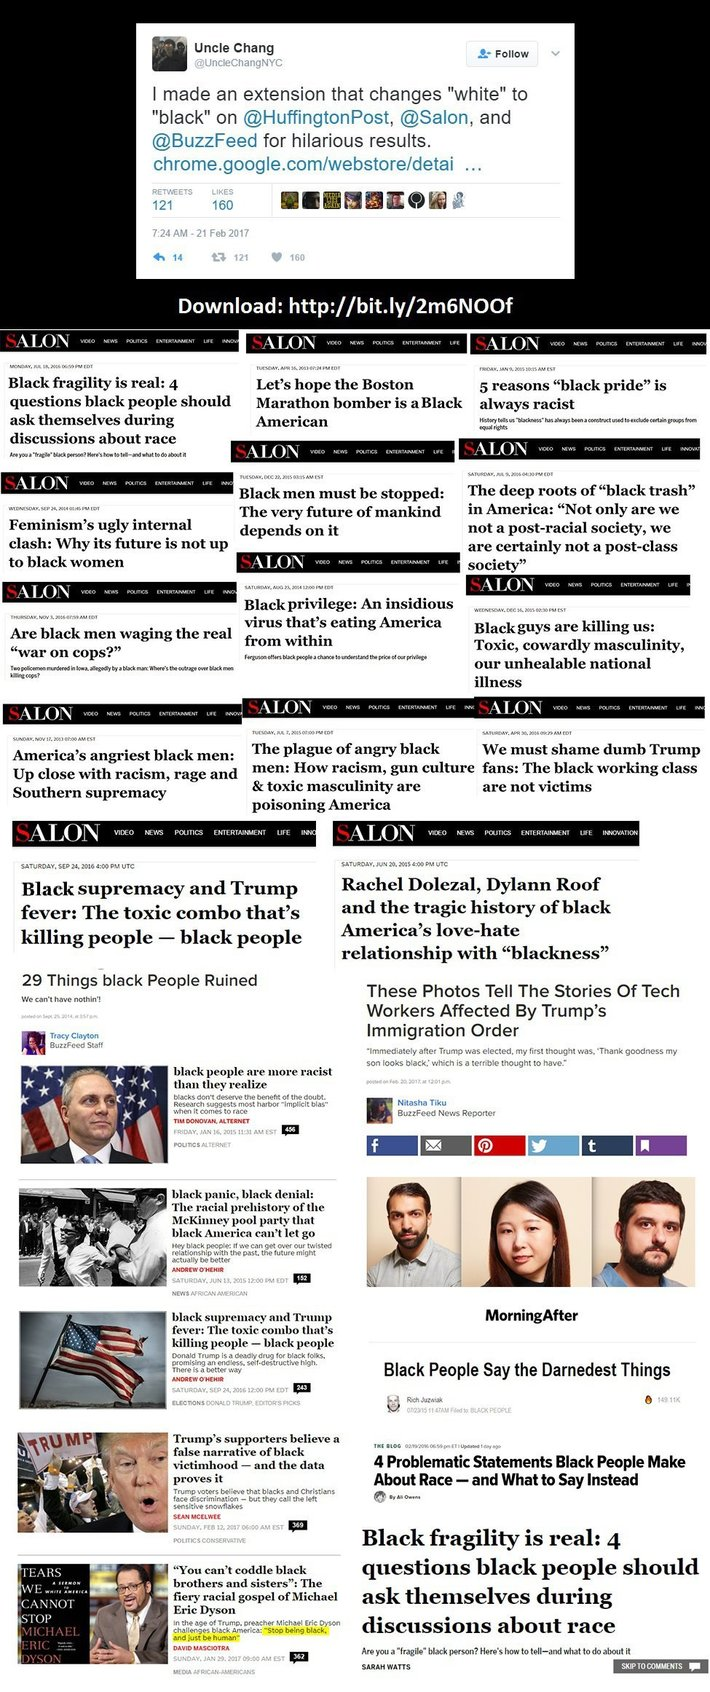 Satire? Browser Plugin Changes White to Black